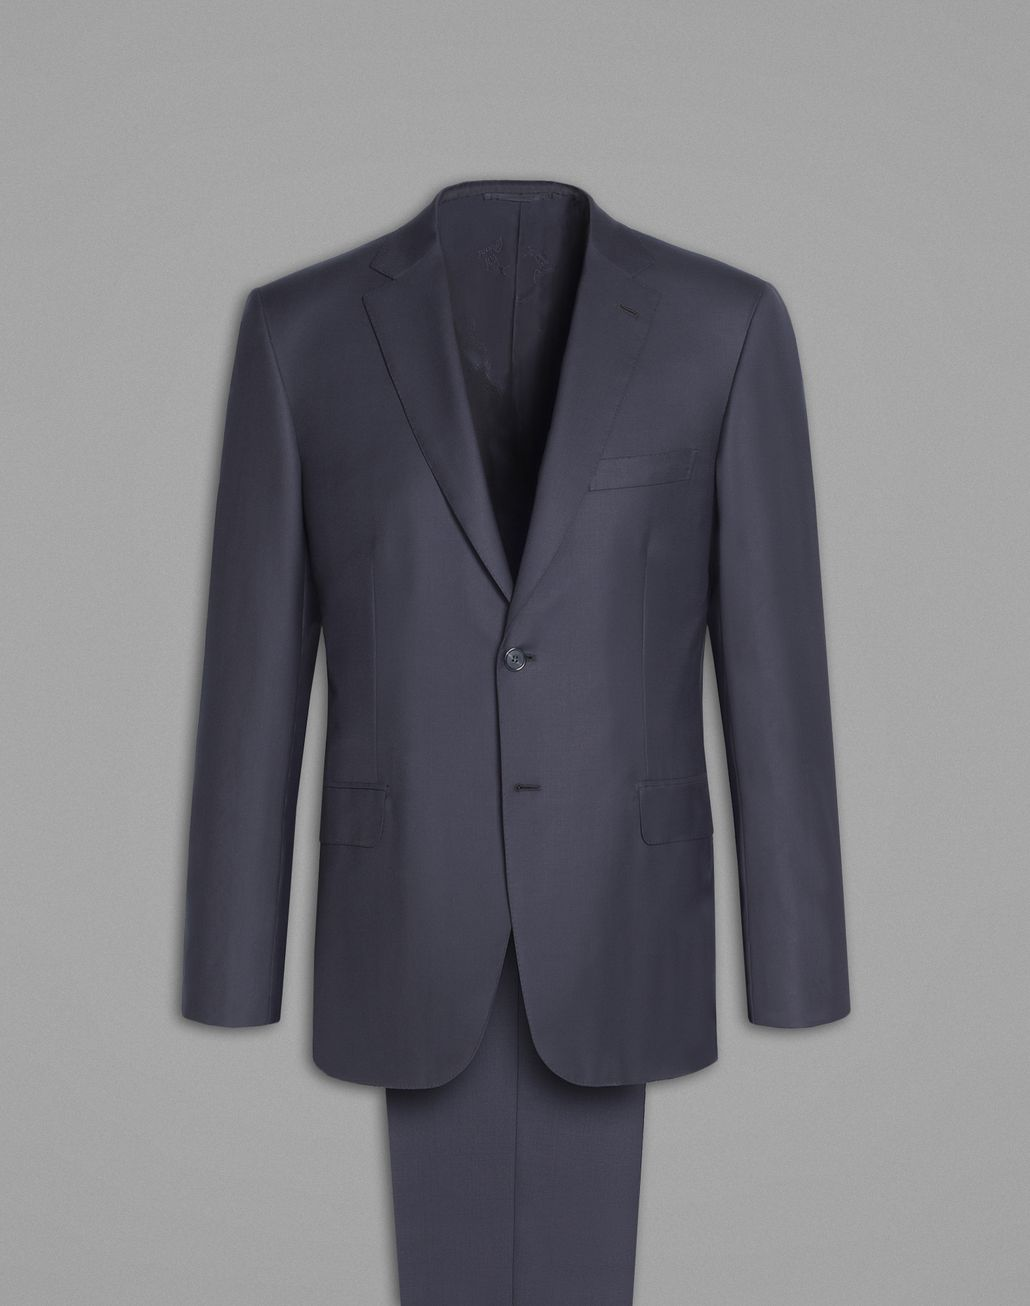 BRIONI Navy Blue Brunico Suit Suits & Jackets U f